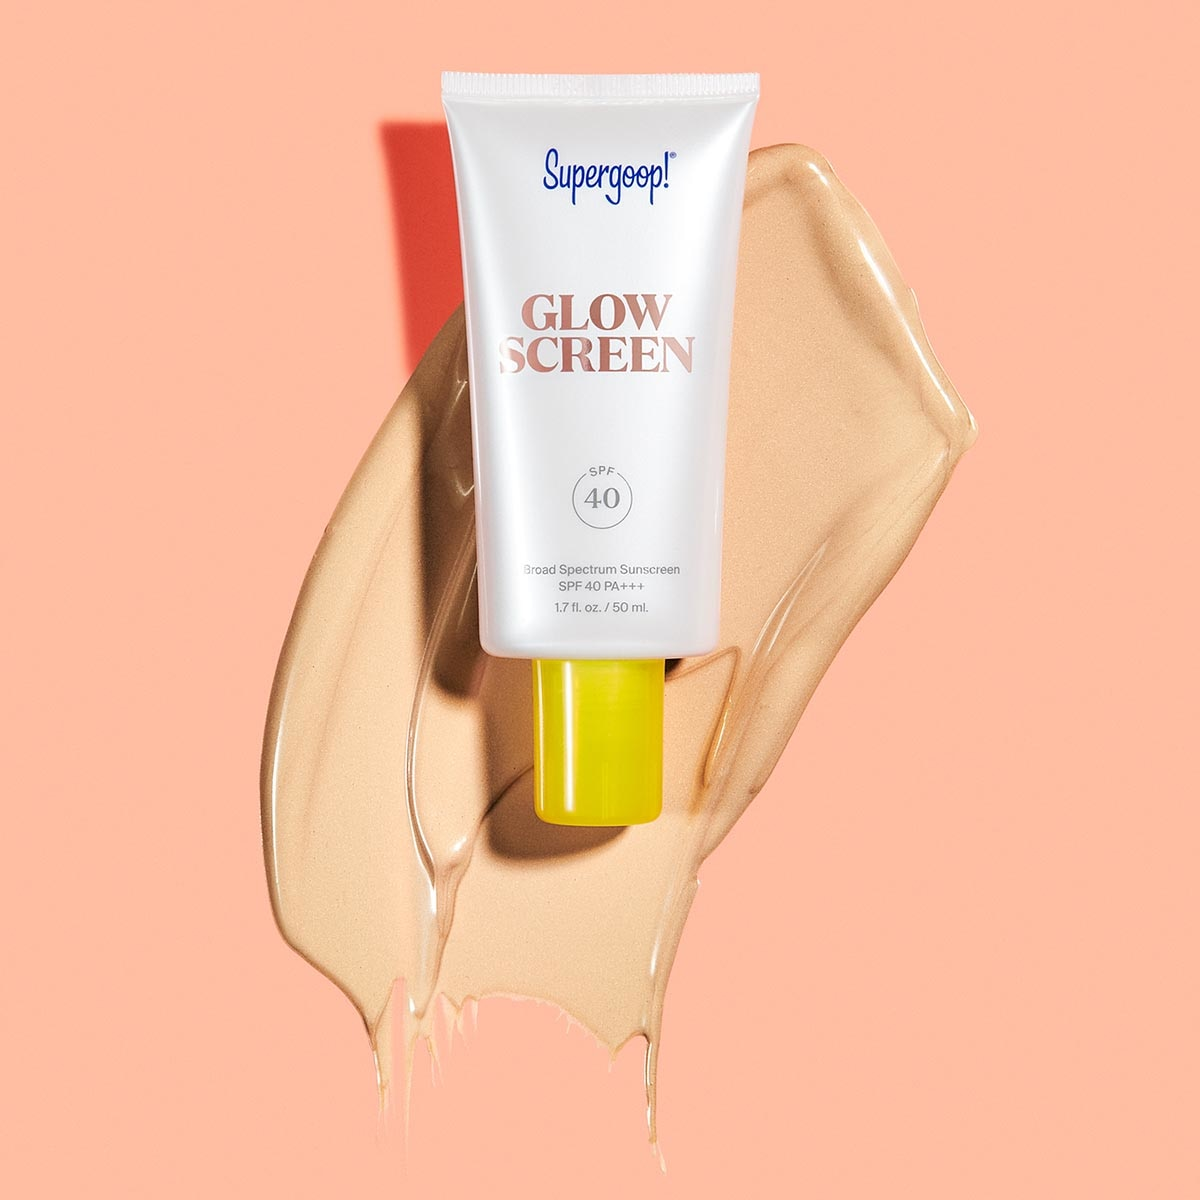 GLOWSCREEN SUNSCREEN BROAD SPECTRUM SPF 40